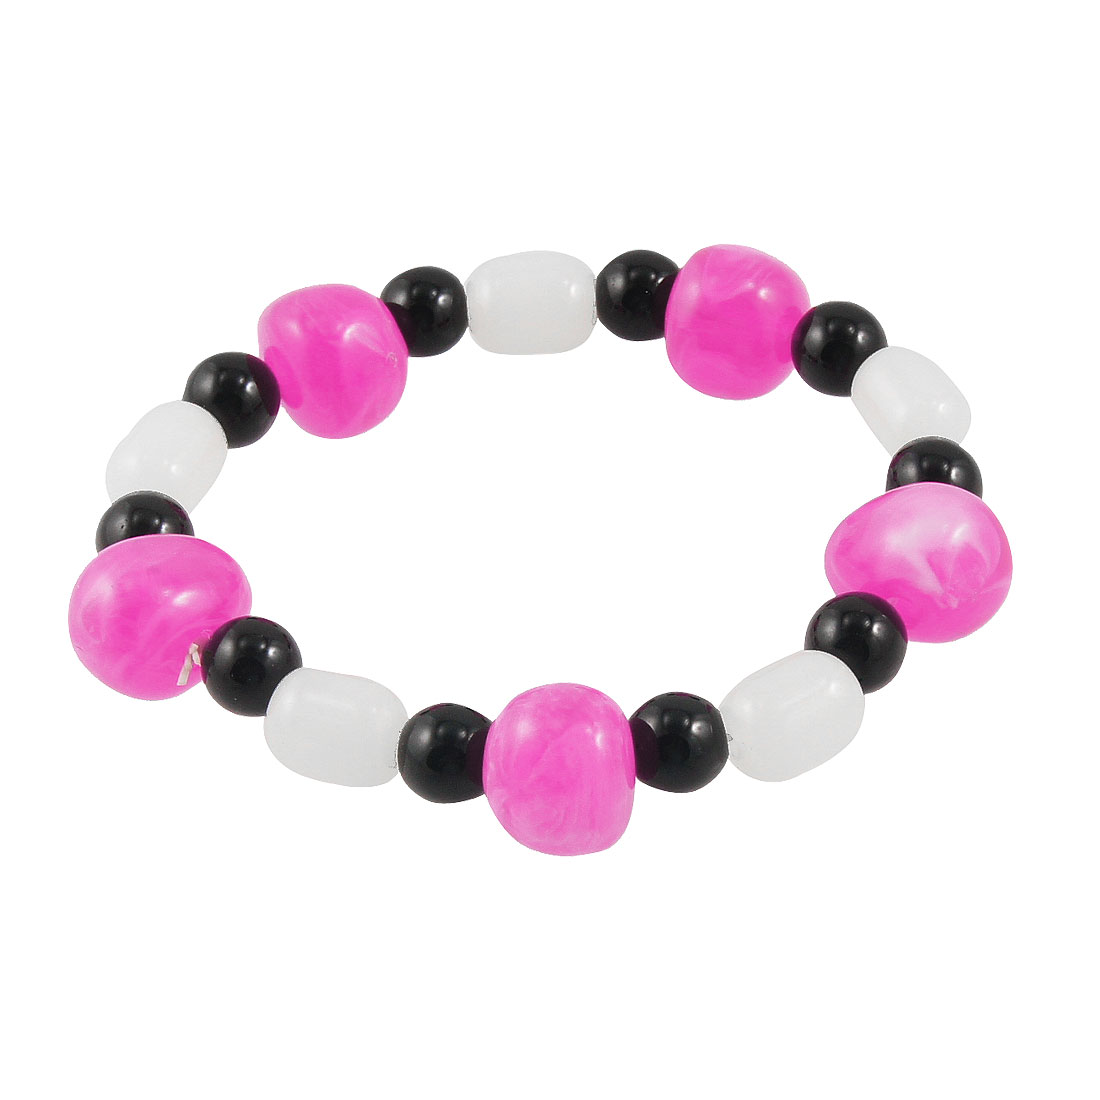 Faux Jade Amaranth Pink Beads Black Round Faux Pearls Elastic Bracelet for Lady